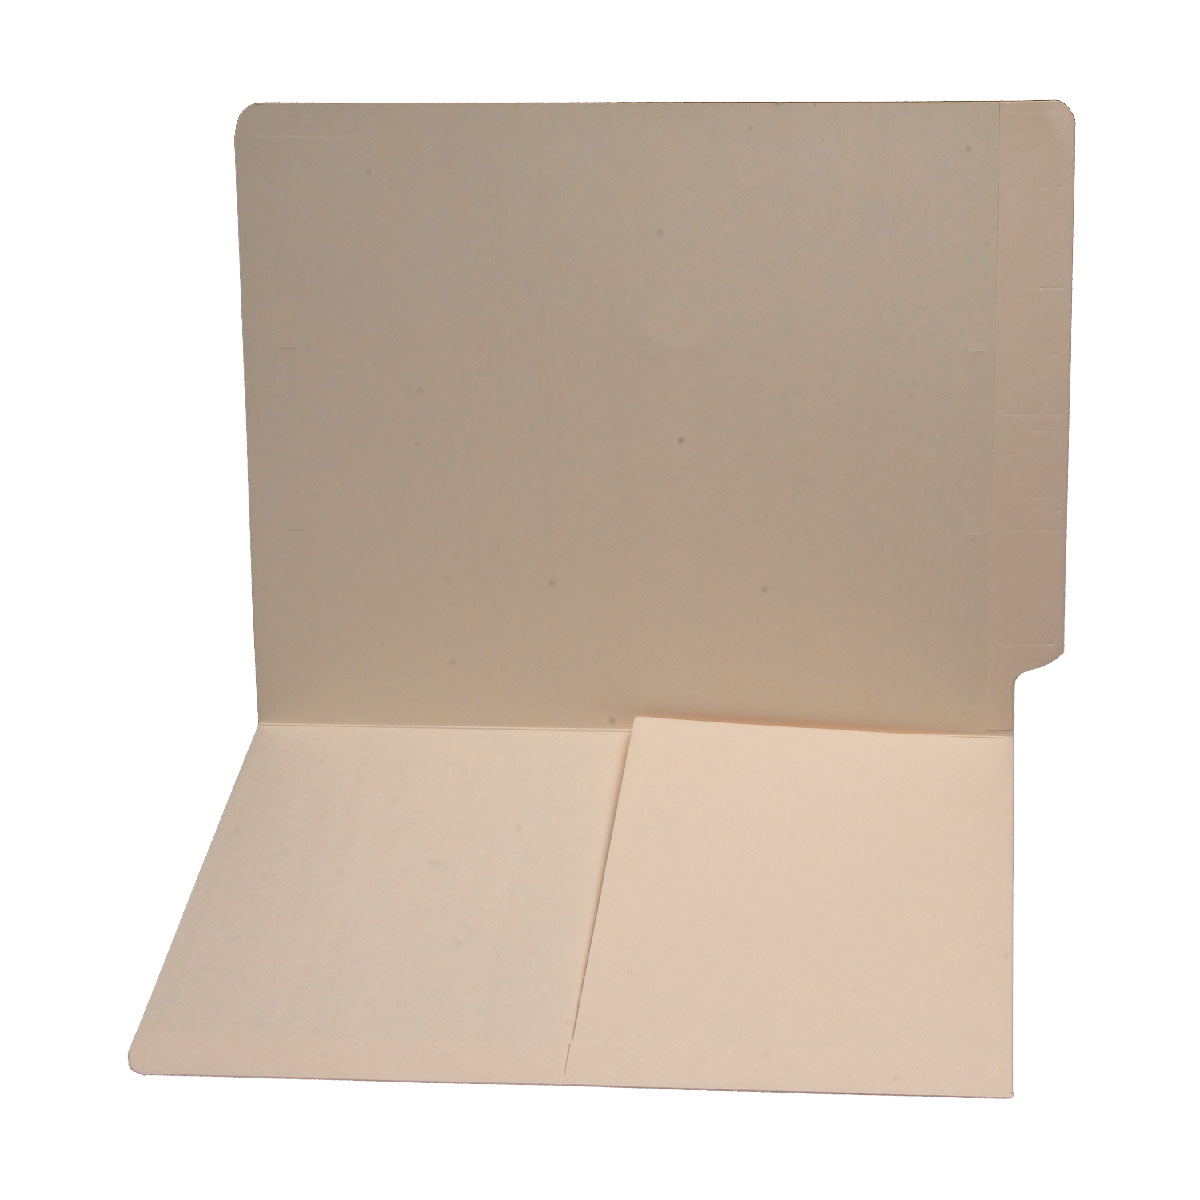 S-9005 - 11 pt Manila Folders, Full Cut End Tab, Letter Size, 1/2 Pocket Inside Front (Box of 50)